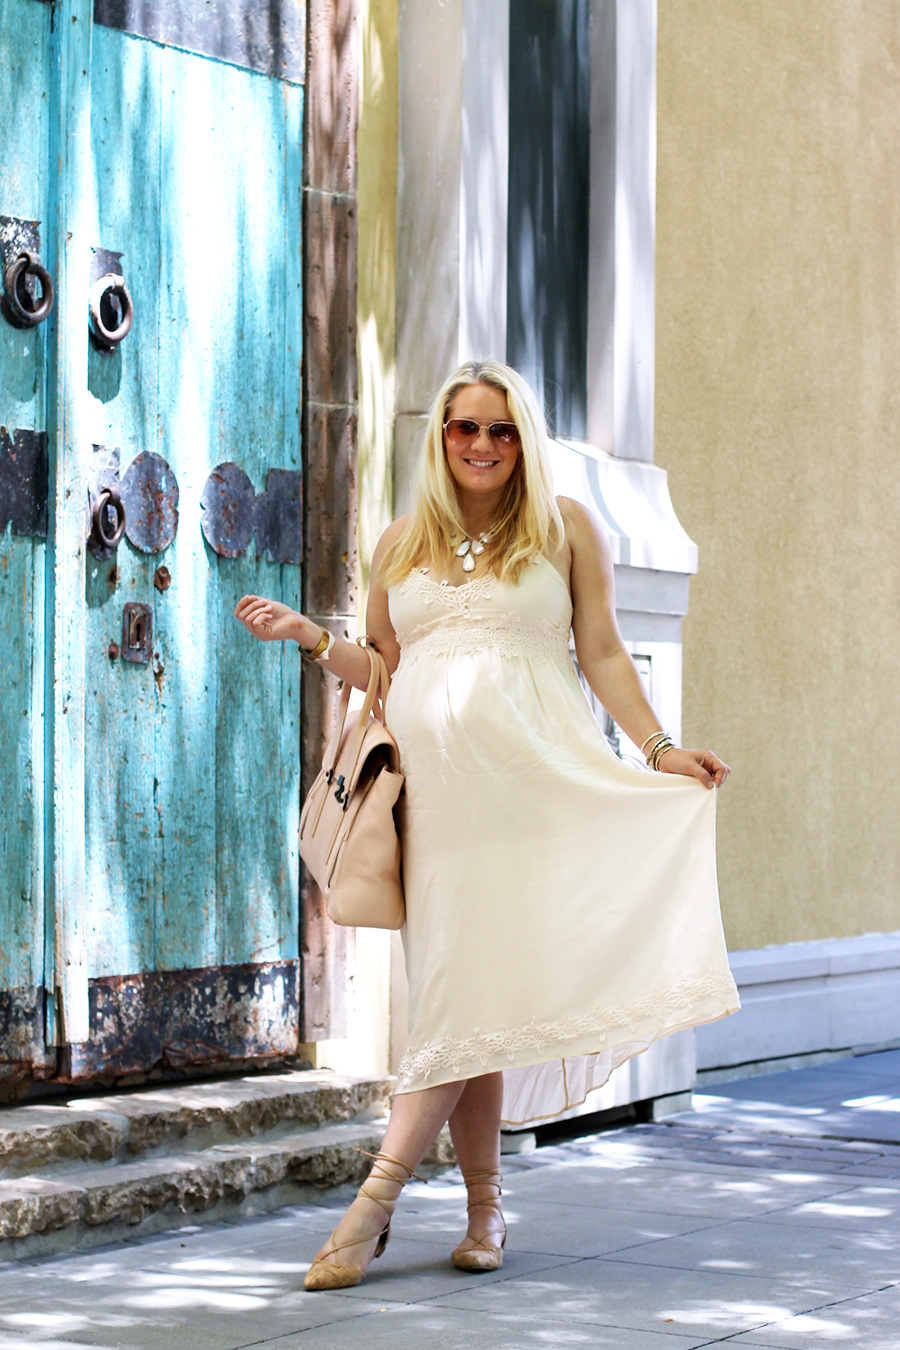 Forever 21 Lace Dress-Maternity Style-Outfit Inspiration-Pregnancy Style-Have Need Want 4